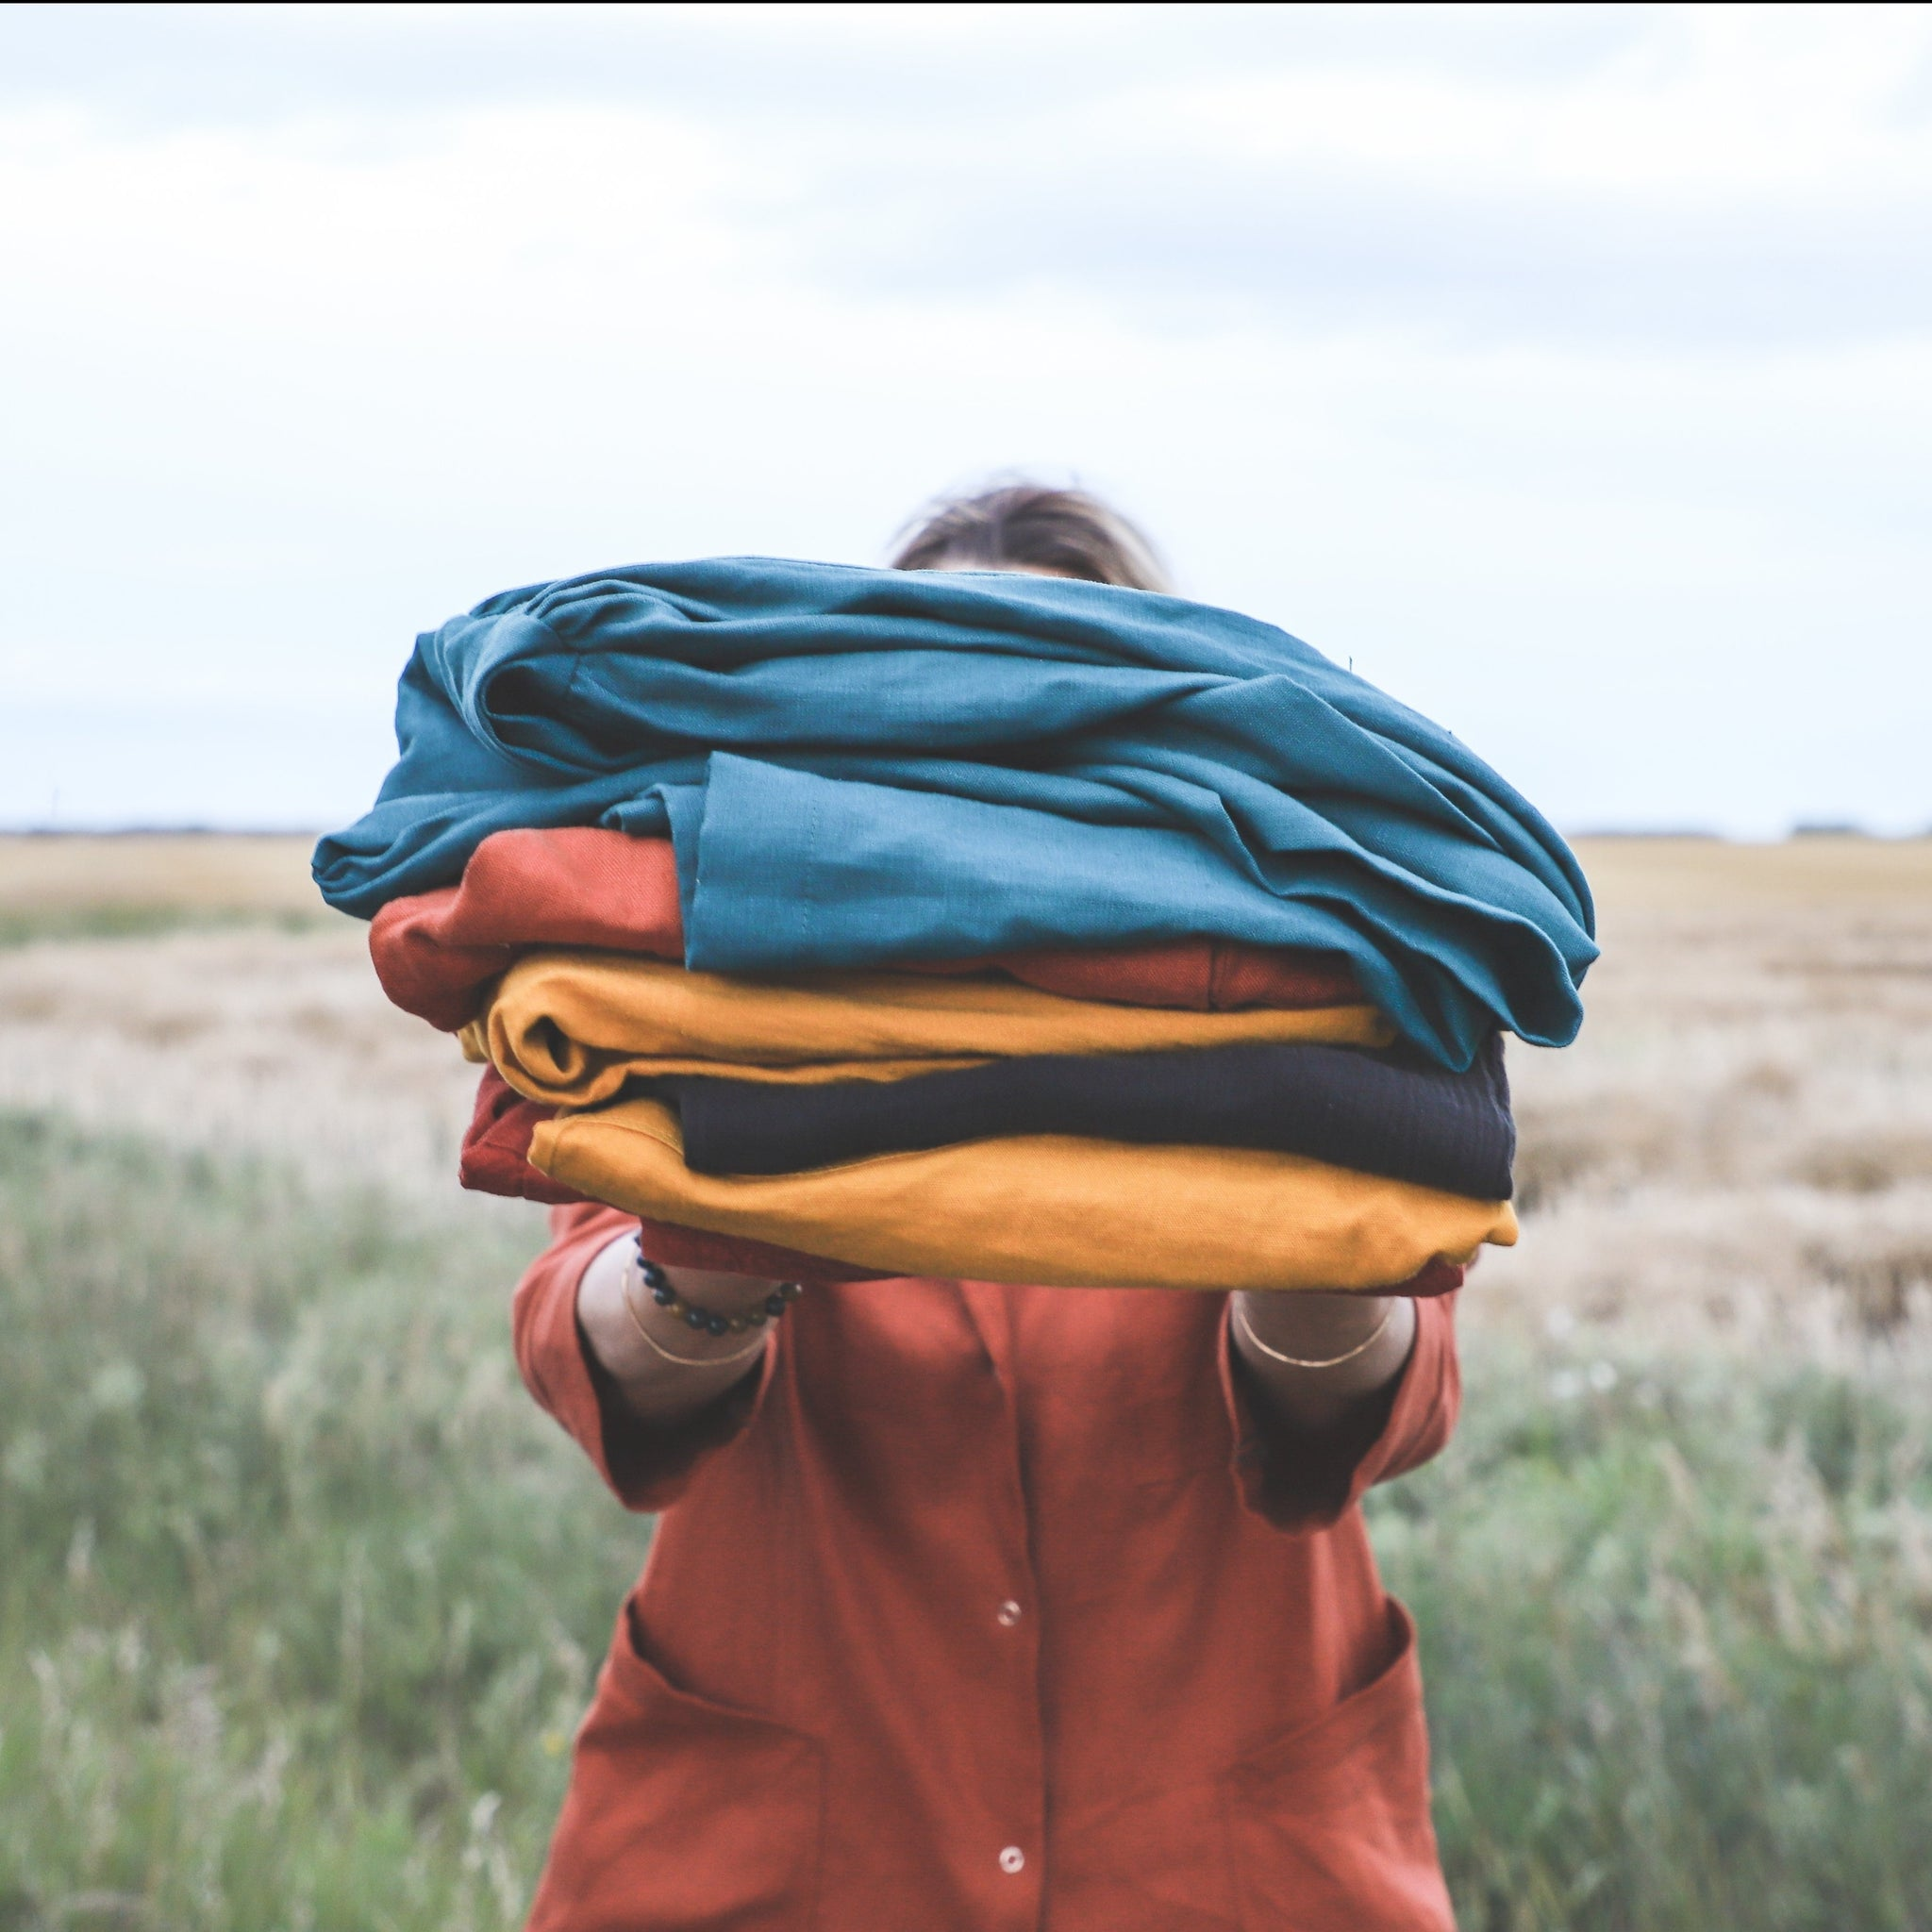 model holding in front of her a pile of folded linen clothes standing in a field